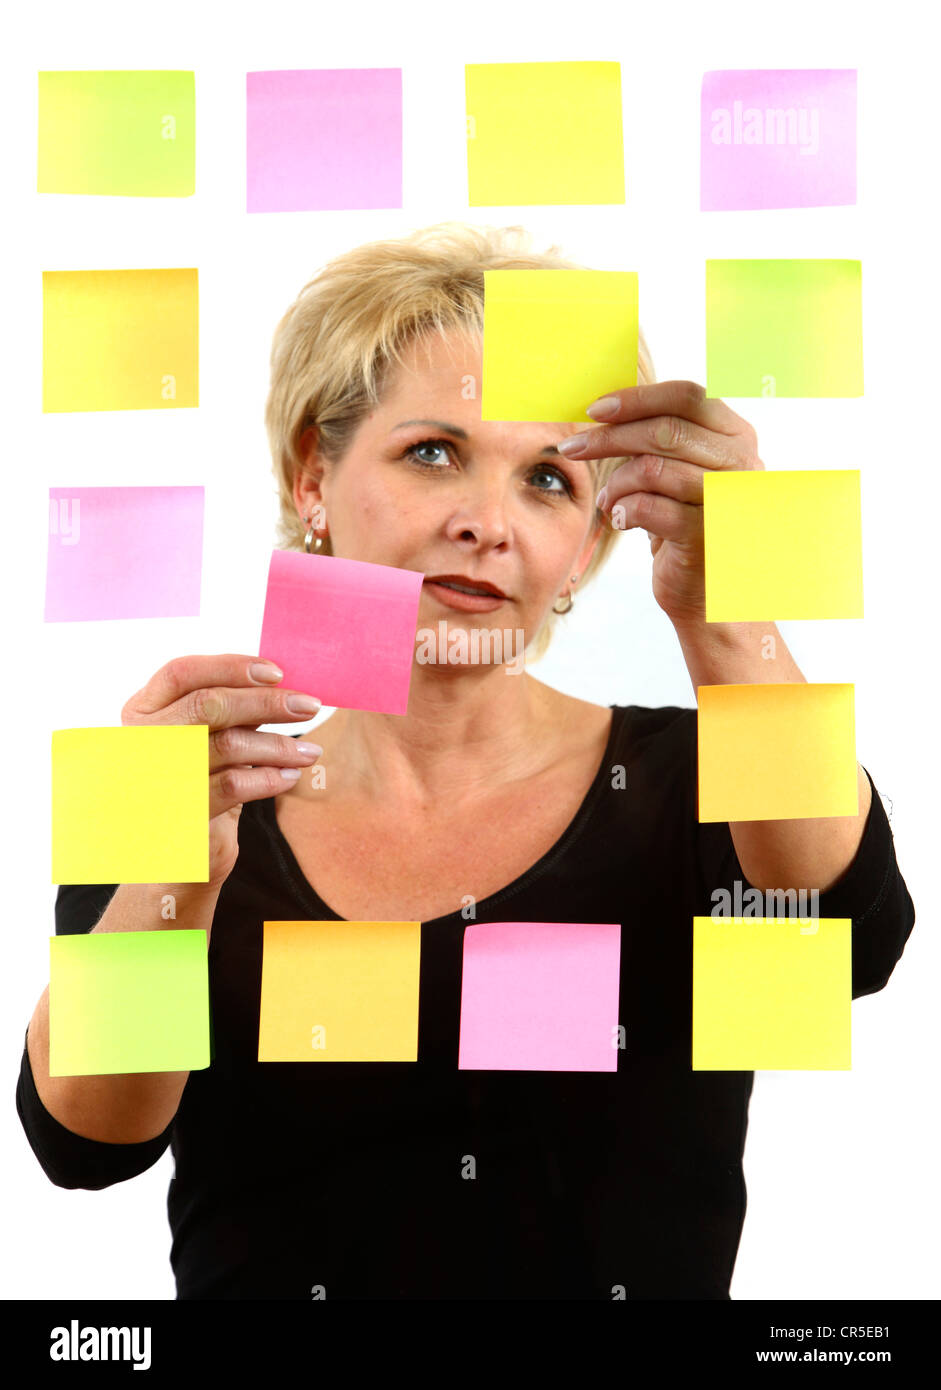 woman sticks self-adhesive Post It, paper notes, stuck to a pane of glass. Different colors. - Stock Image